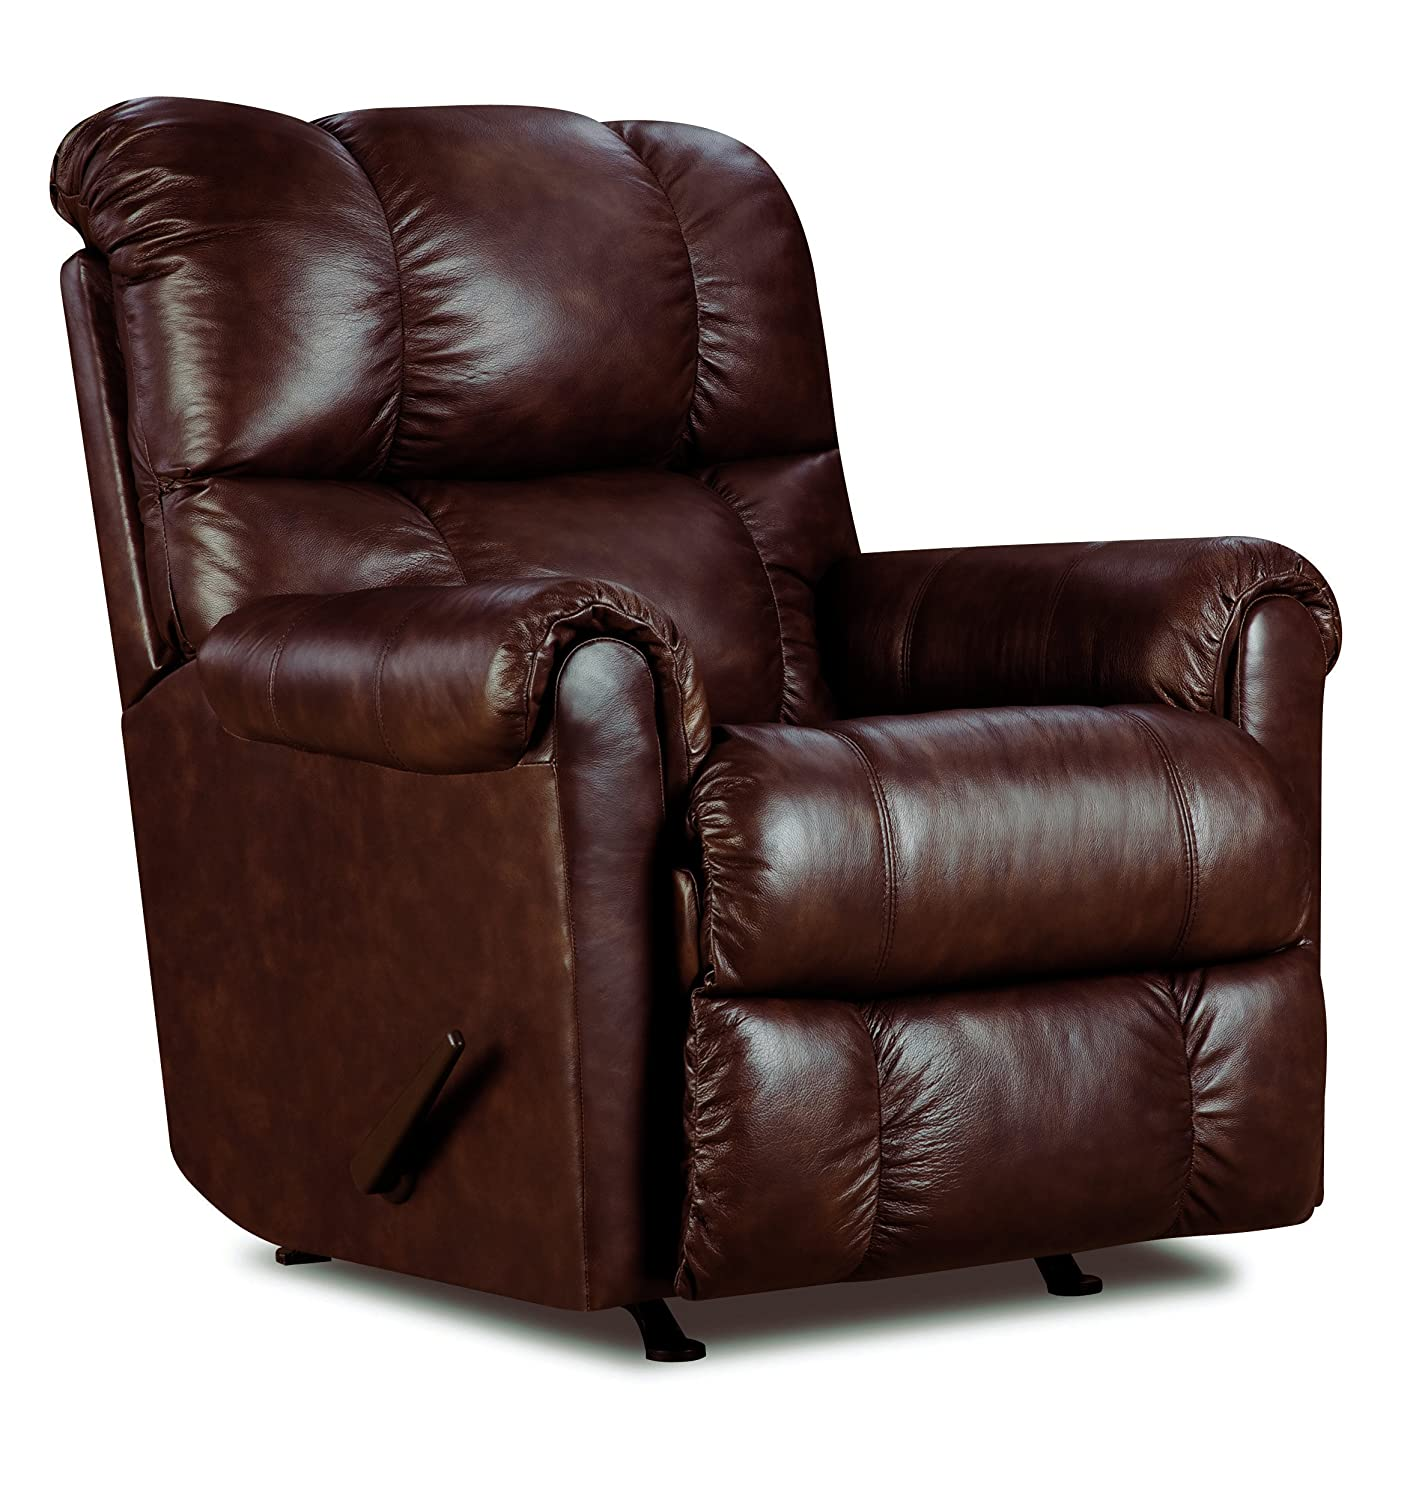 Amazon.com Lane Furniture Eureka Recliner Savage Cocoa Kitchen u0026 Dining  sc 1 st  Amazon.com & Amazon.com: Lane Furniture Eureka Recliner Savage Cocoa: Kitchen ...